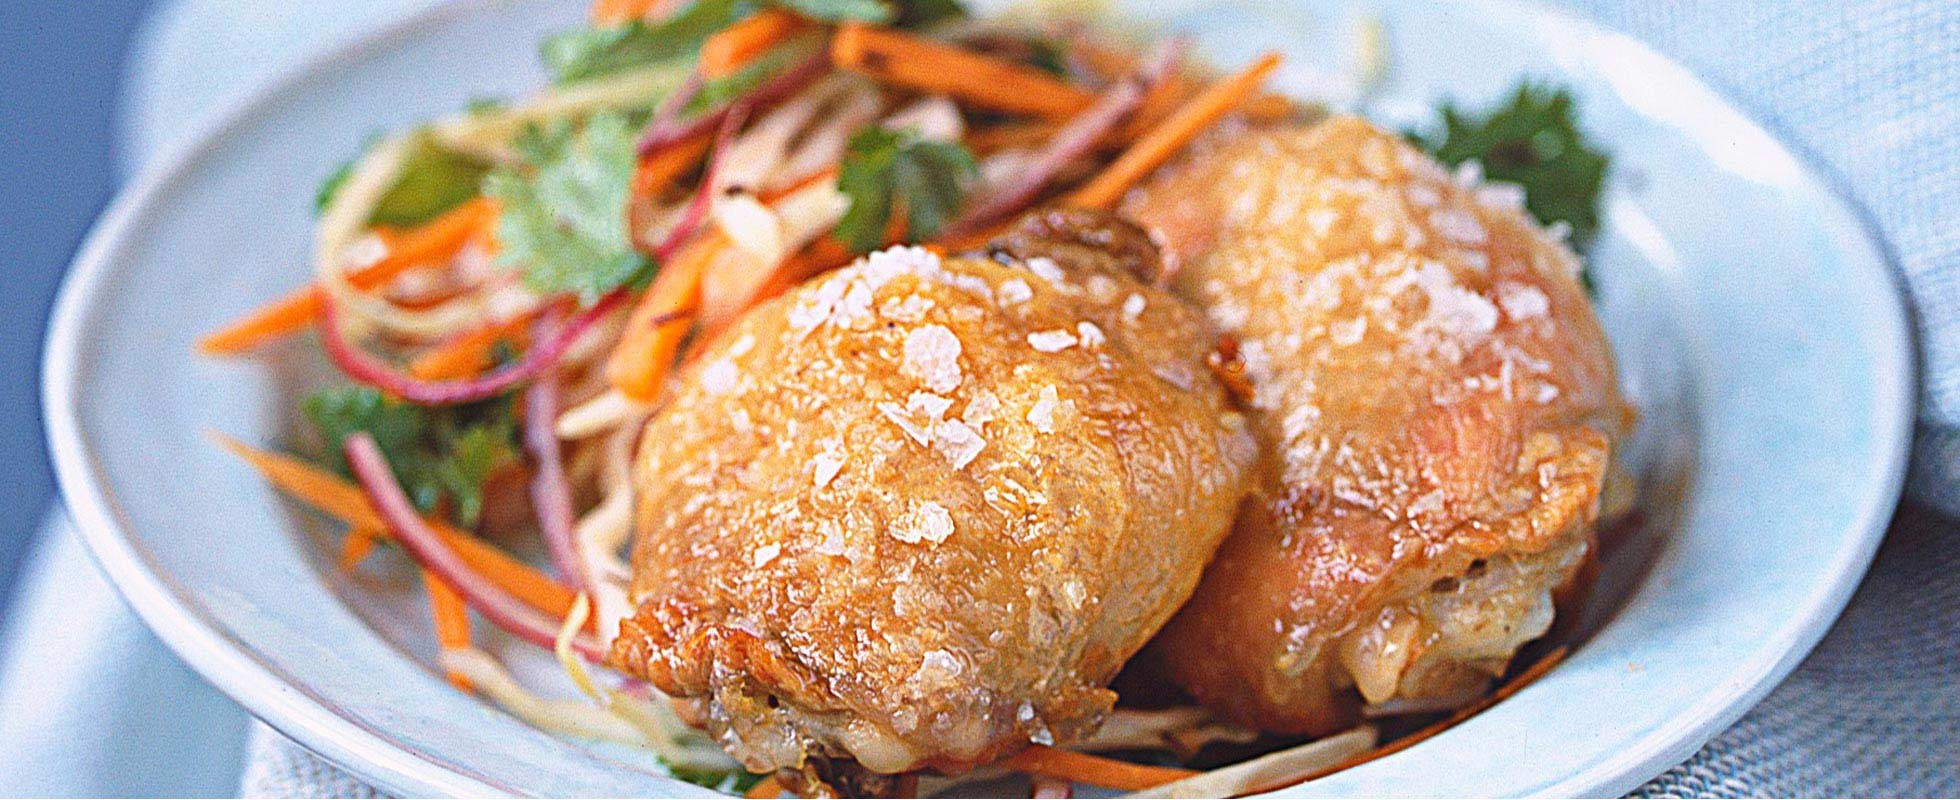 Salt-roast chicken with spiced carrot coleslaw